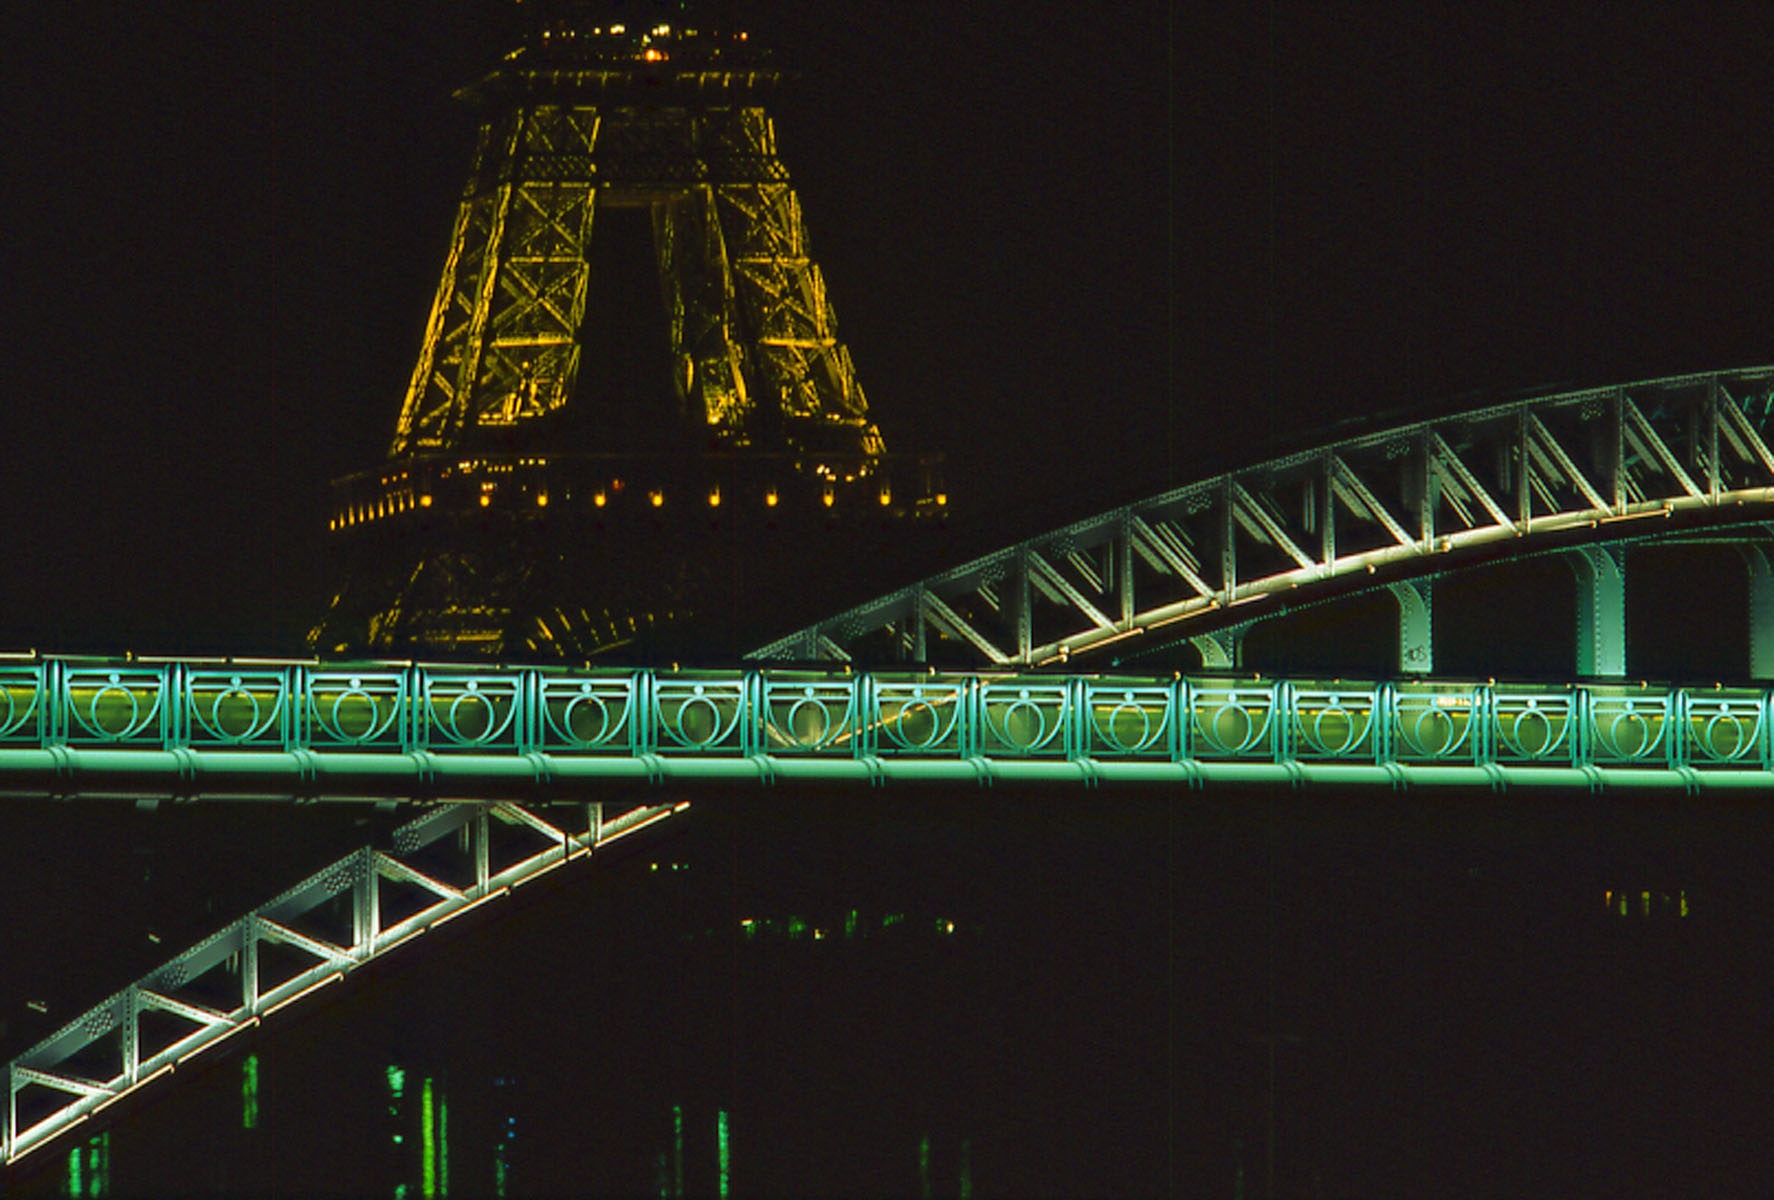 Eiffel Tower and green bridge, Paris, France